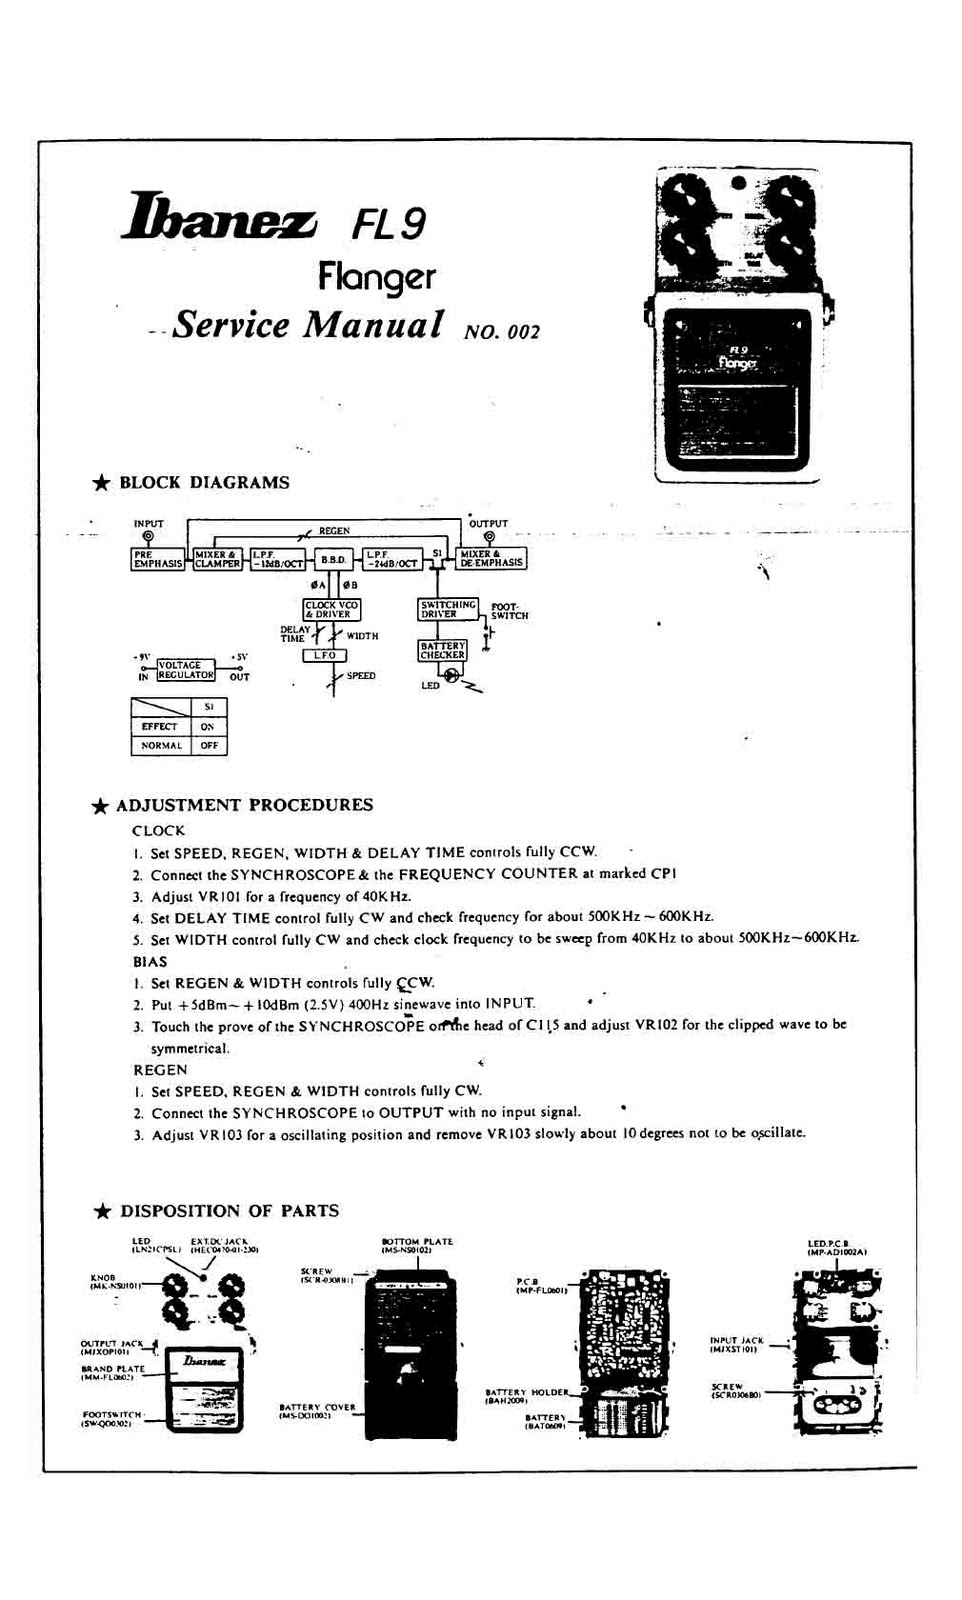 the awesome power of rockets repairs ibanez fl9 flanger rh theawesomepowerofrockets blogspot com ibanez gsr 200 owners manual ibanez instruction manual на русском